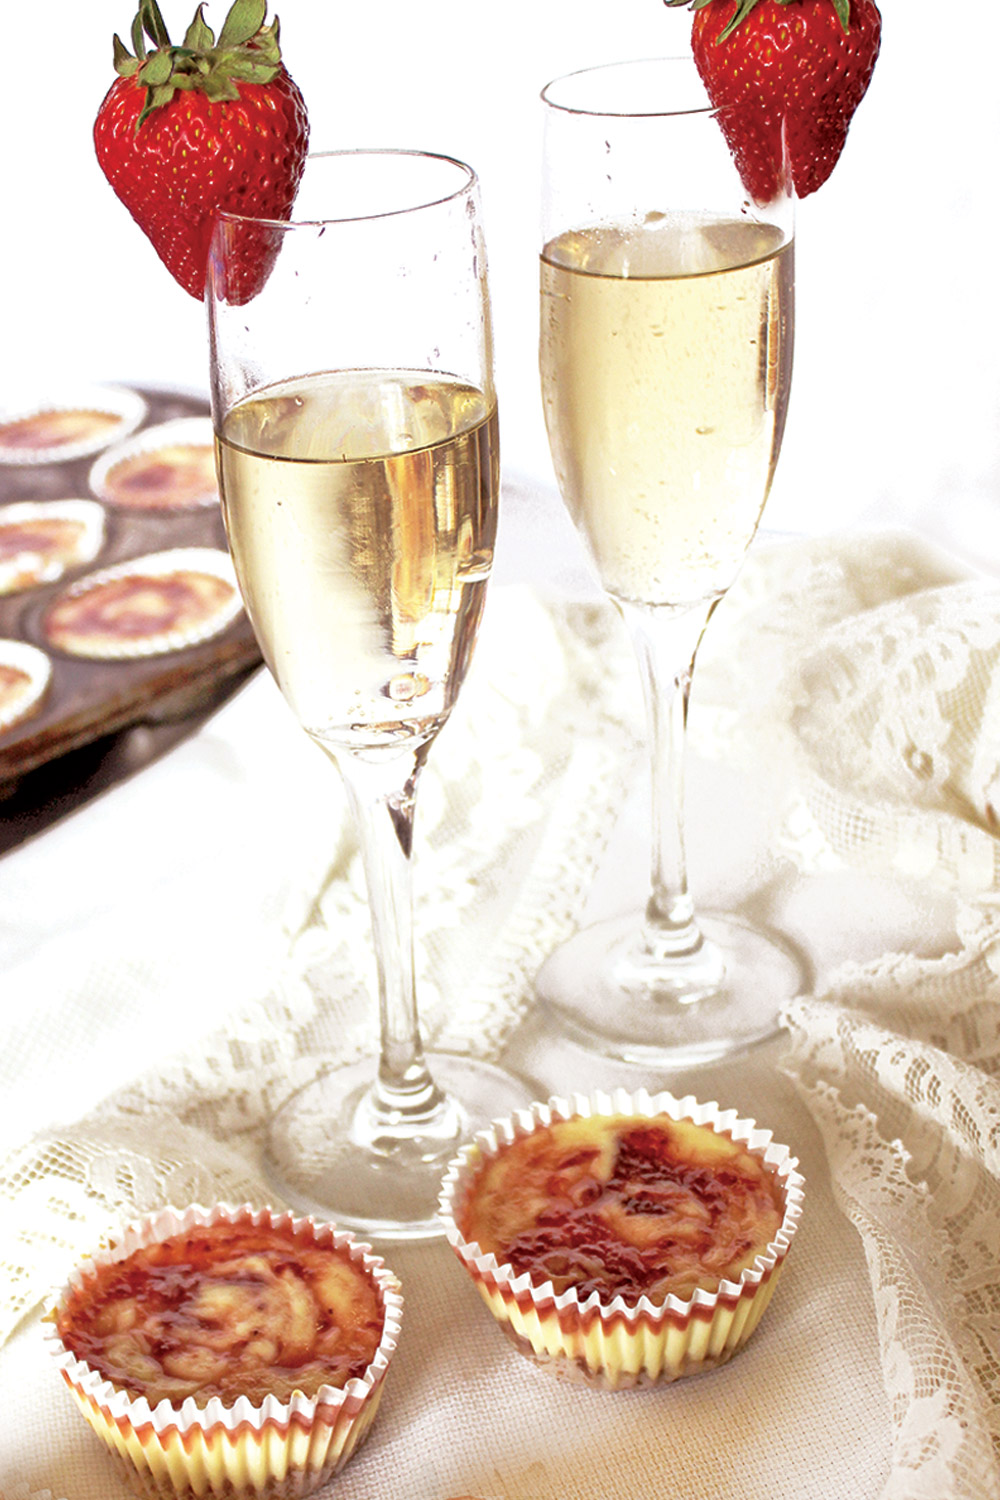 Pair of champagne flues on lace tablecloth with cheesecake strawberry jam swirls